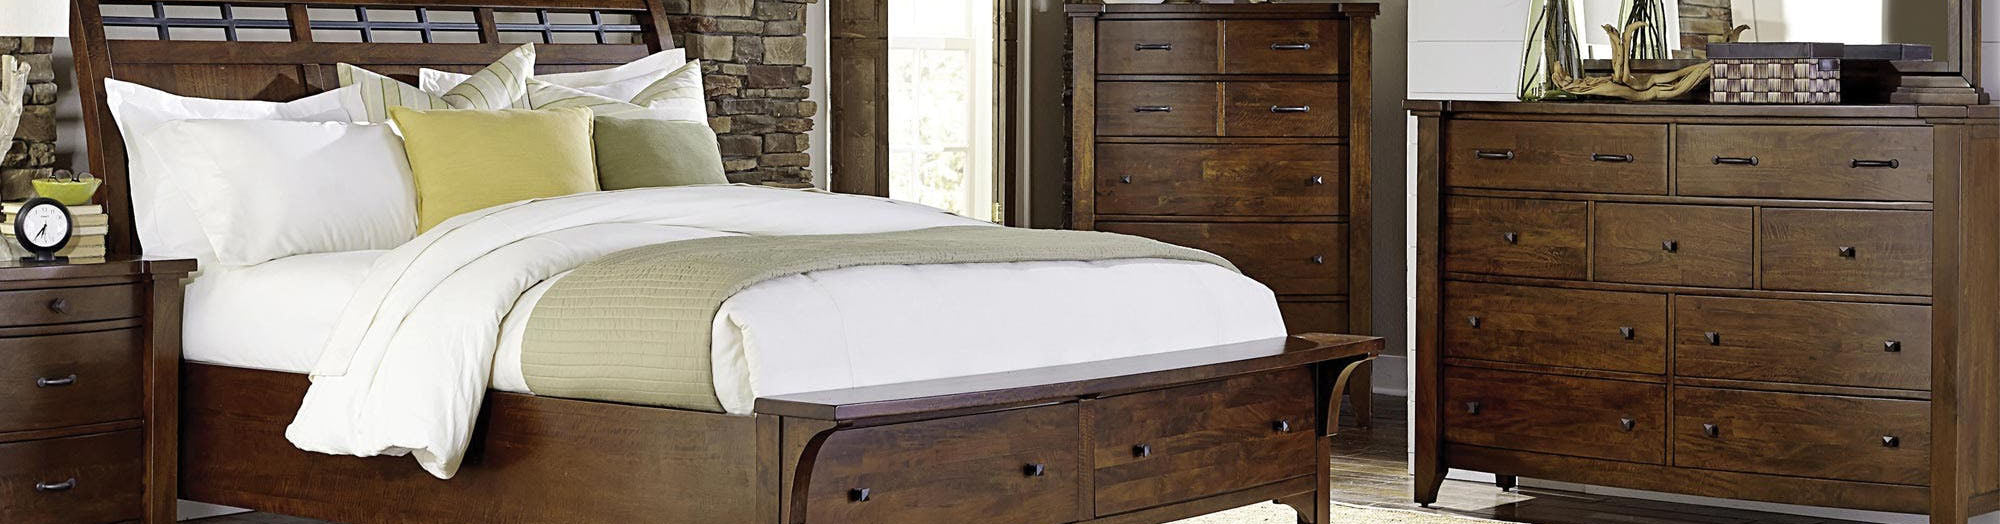 Master Bedroom Furniture Fair Cincinnati Dayton Louisville